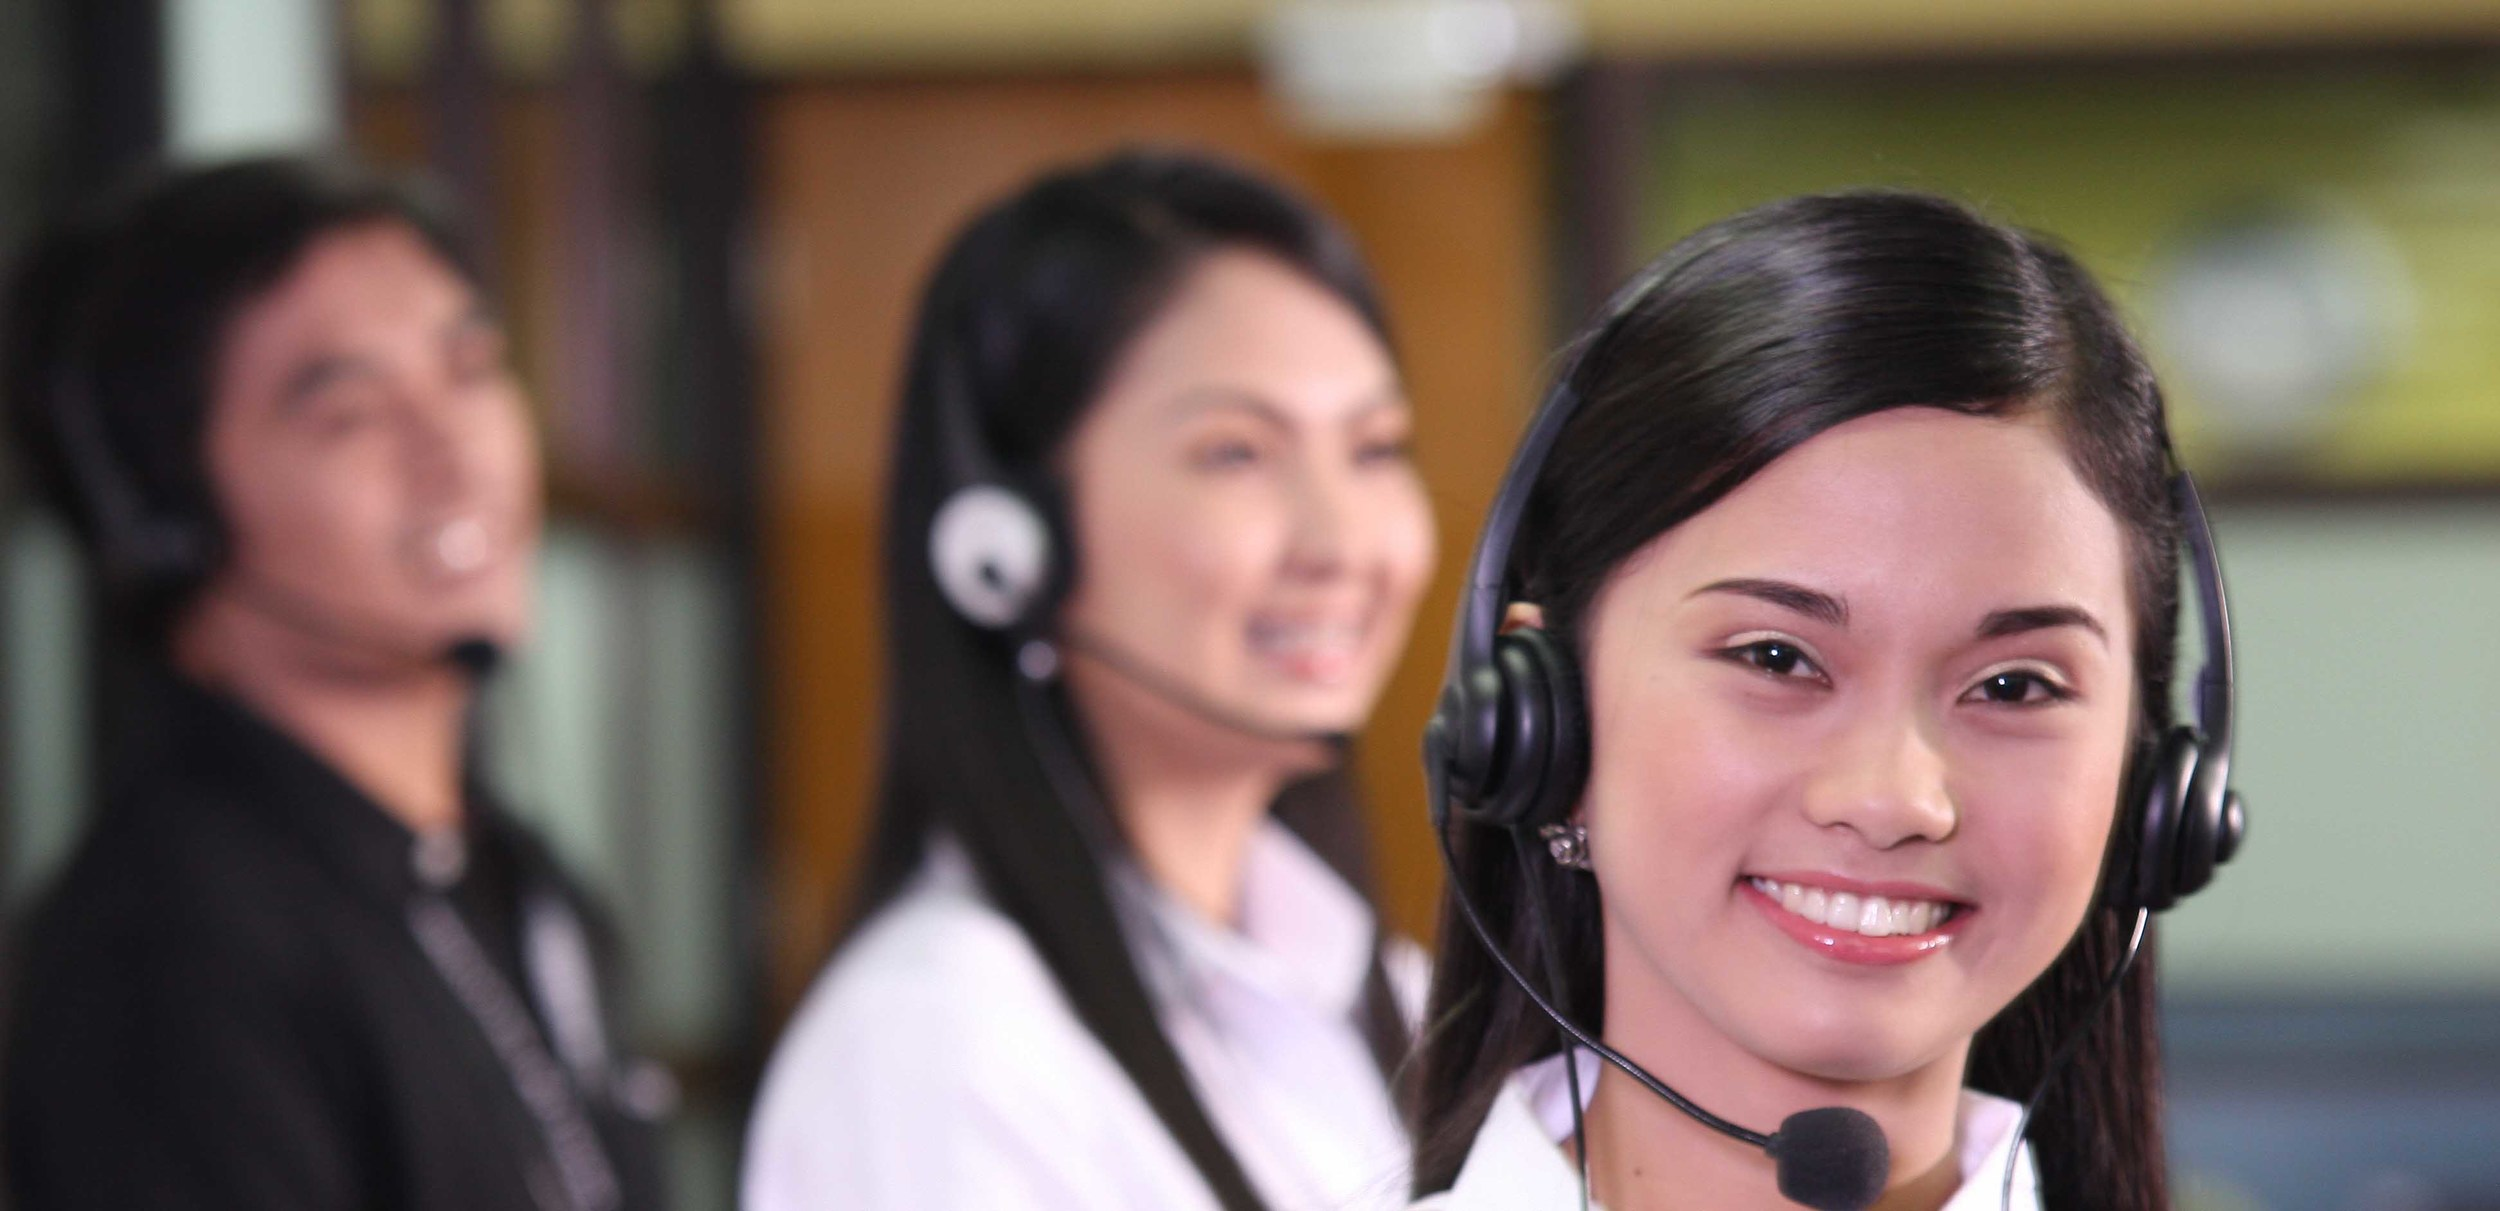 call-center-agents.jpg